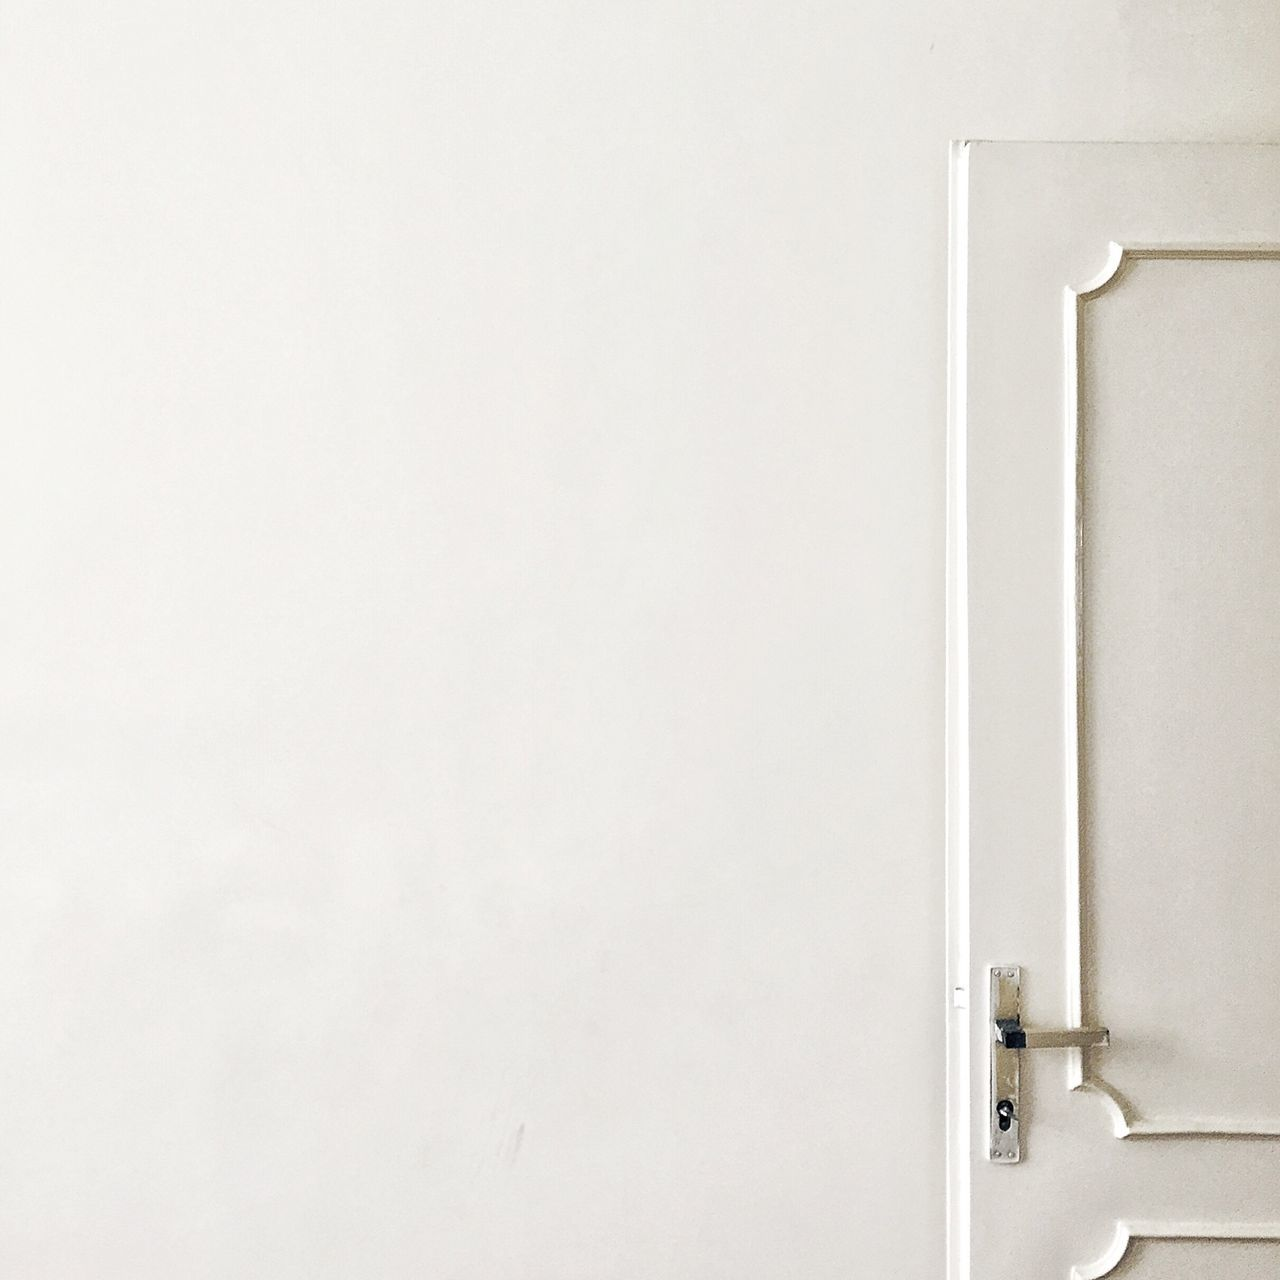 copy space, metal, door, white color, close-up, no people, indoors, hinge, architecture, day